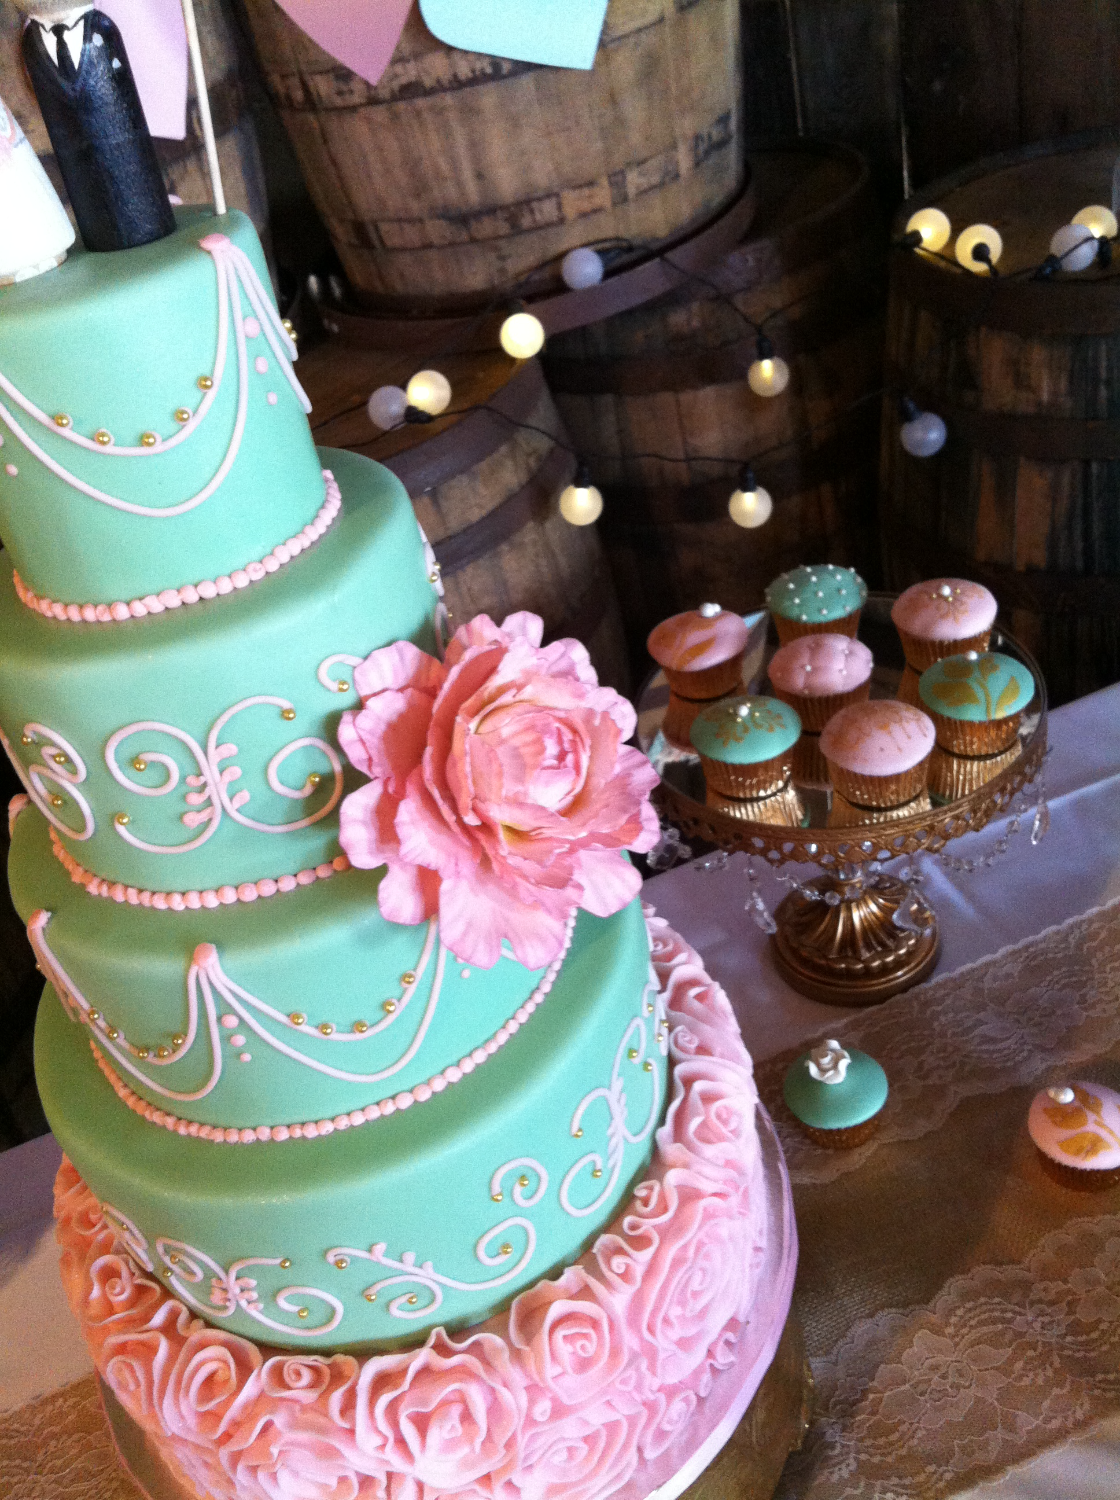 Wedding Cake & Designer Cupcakes